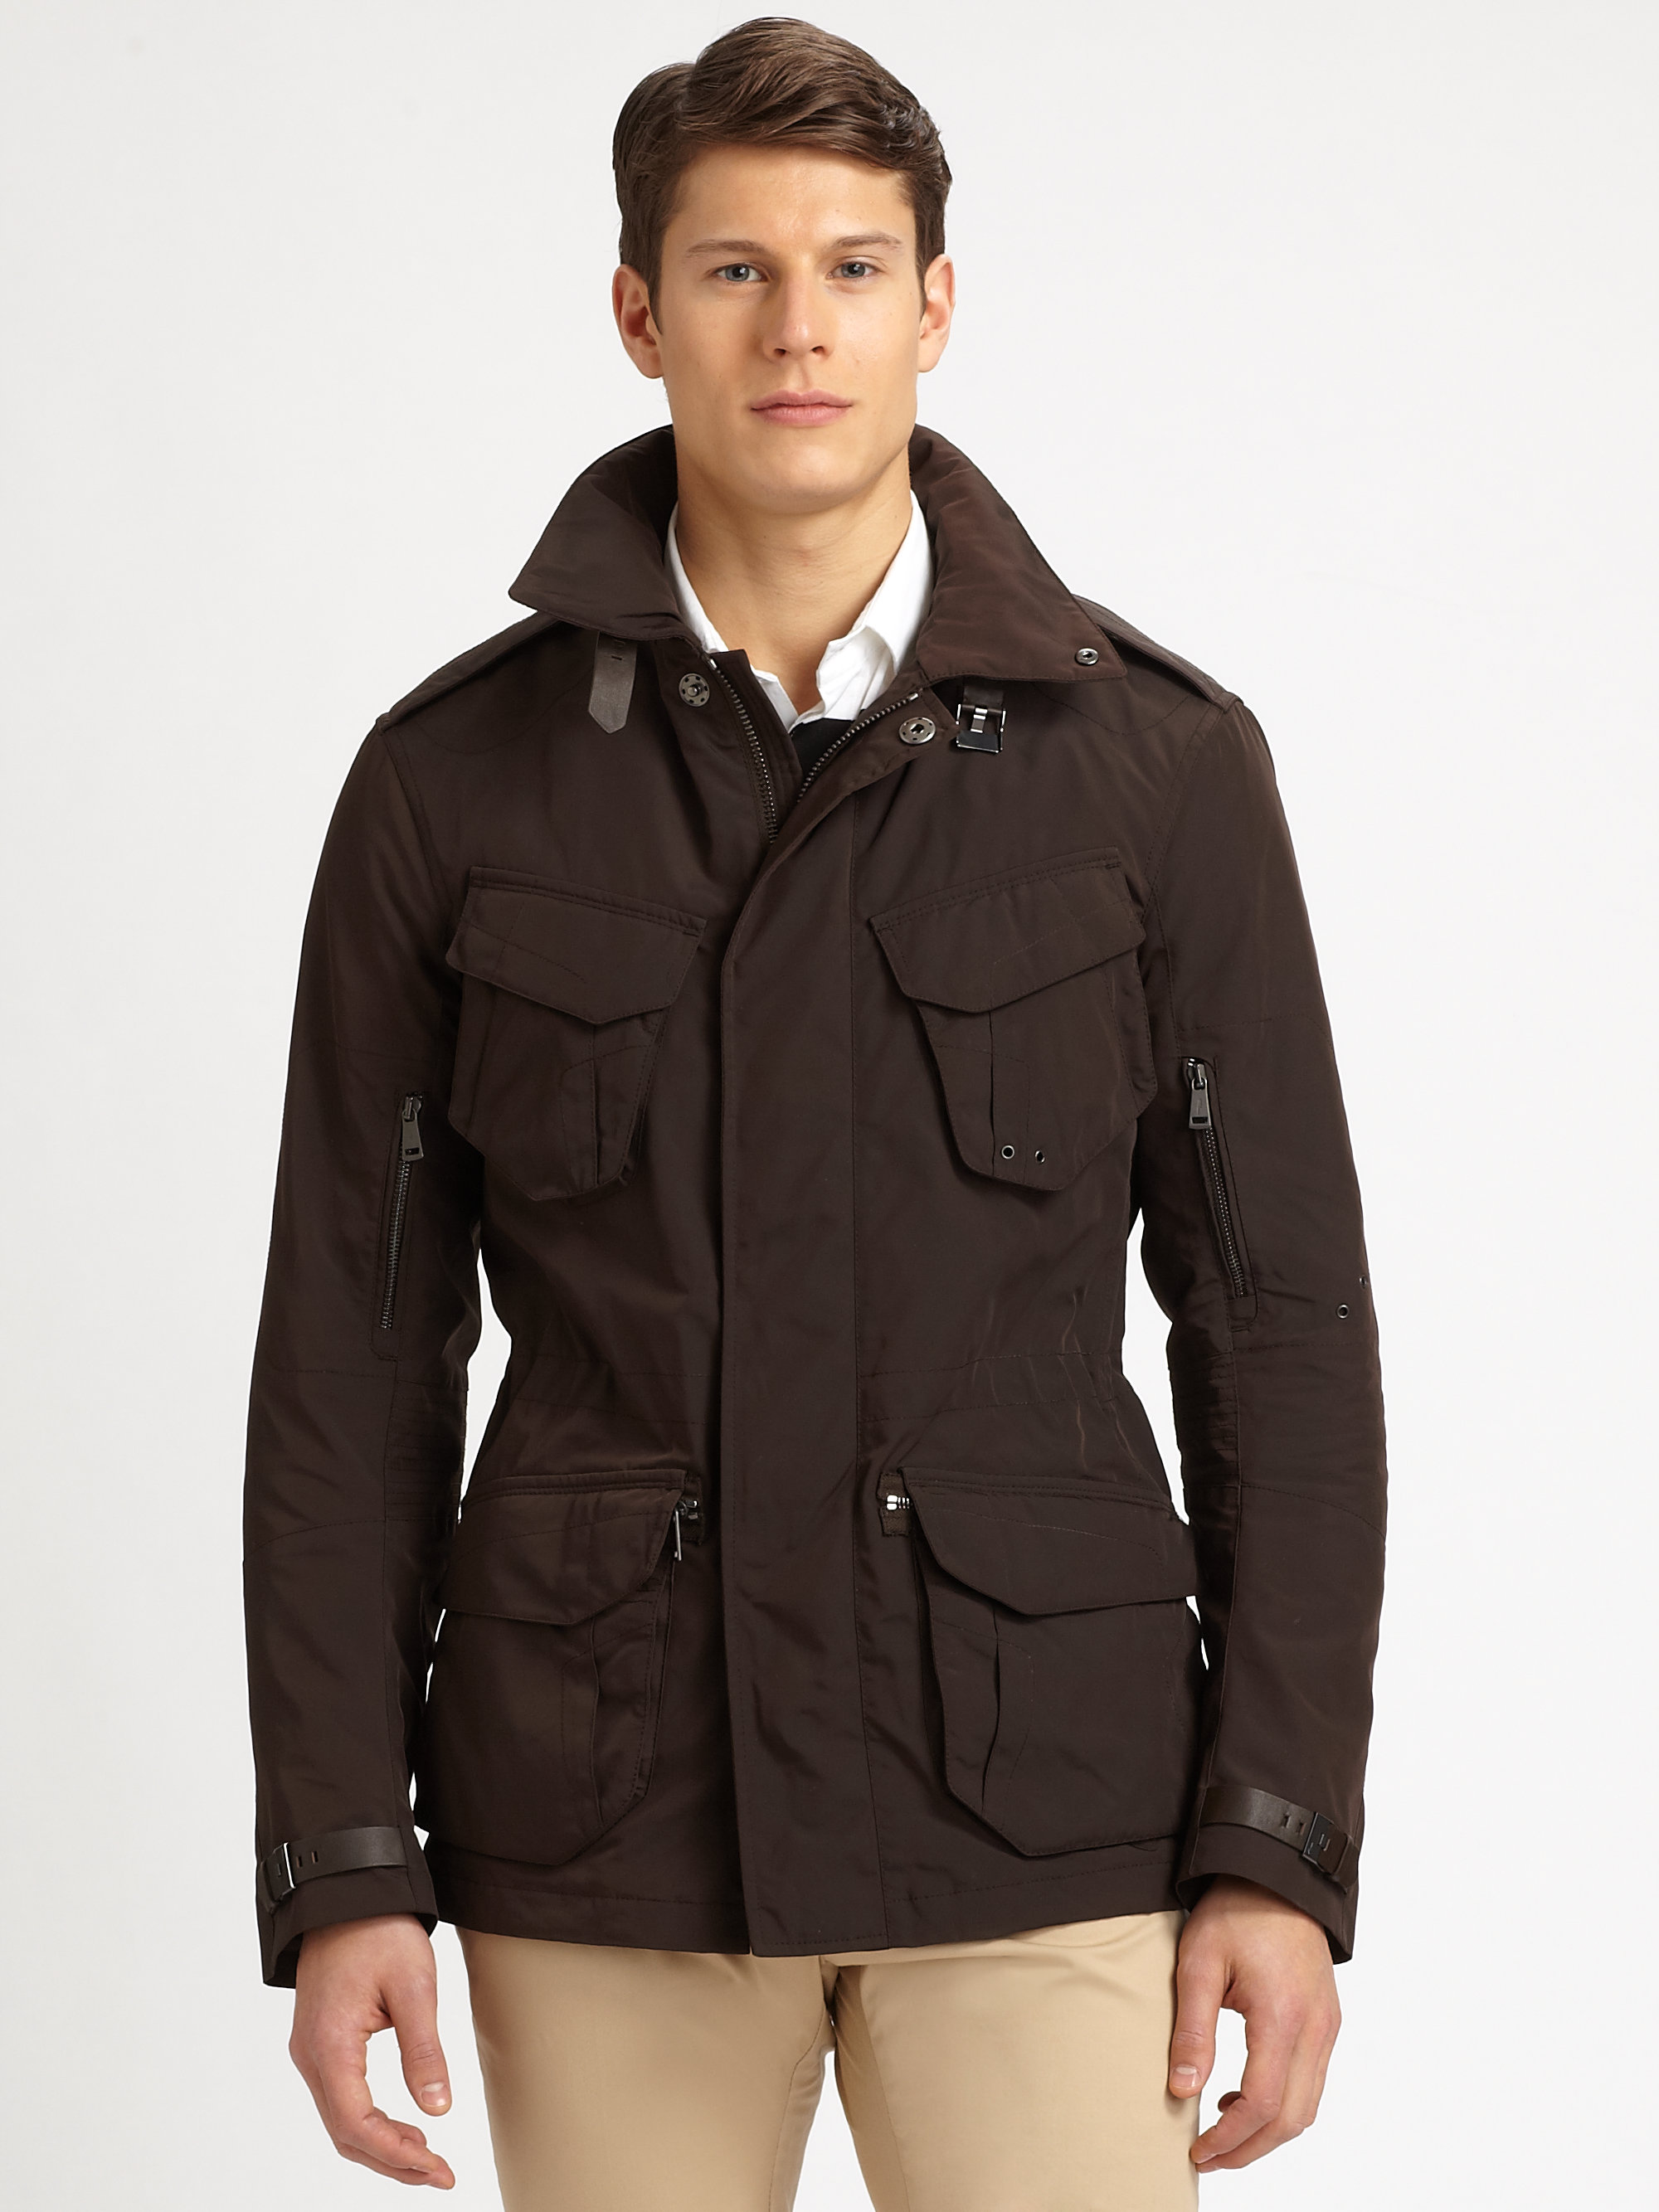 Ralph lauren black label Filled Escape Jacket in Brown for Men | Lyst